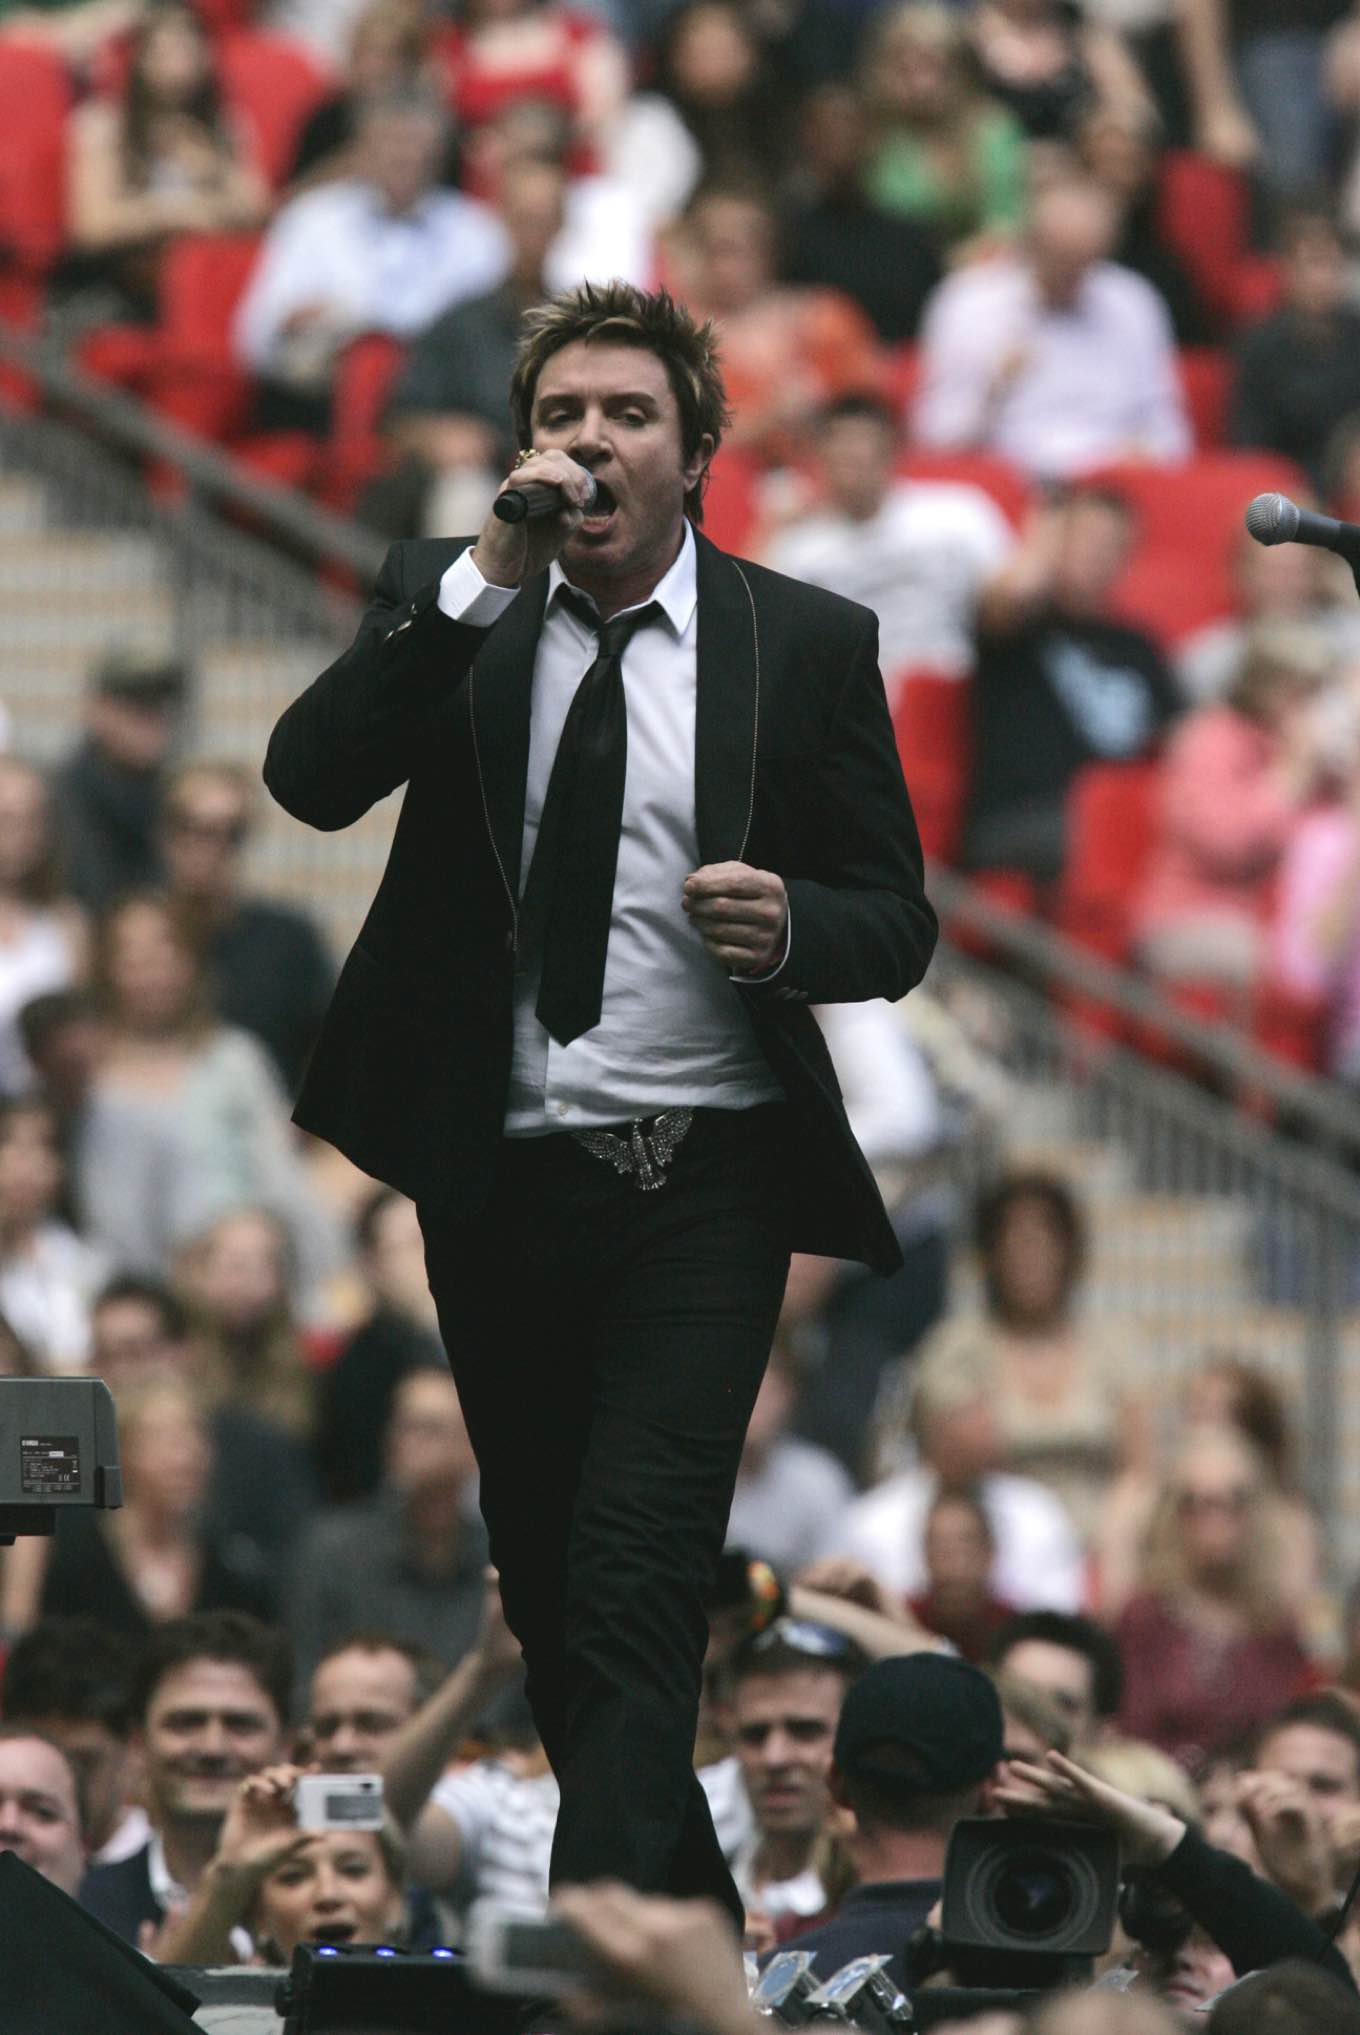 Simon Le Bon of British pop group Duran Duran performs on stage during the Concert for Diana at Wembley Stadium in London, Sunday July 1, 2007. The concert was held on Sunday to mark what would have been the 46th birthday of Diana Princess of Wales. (AP Photo/Matt Dunham)